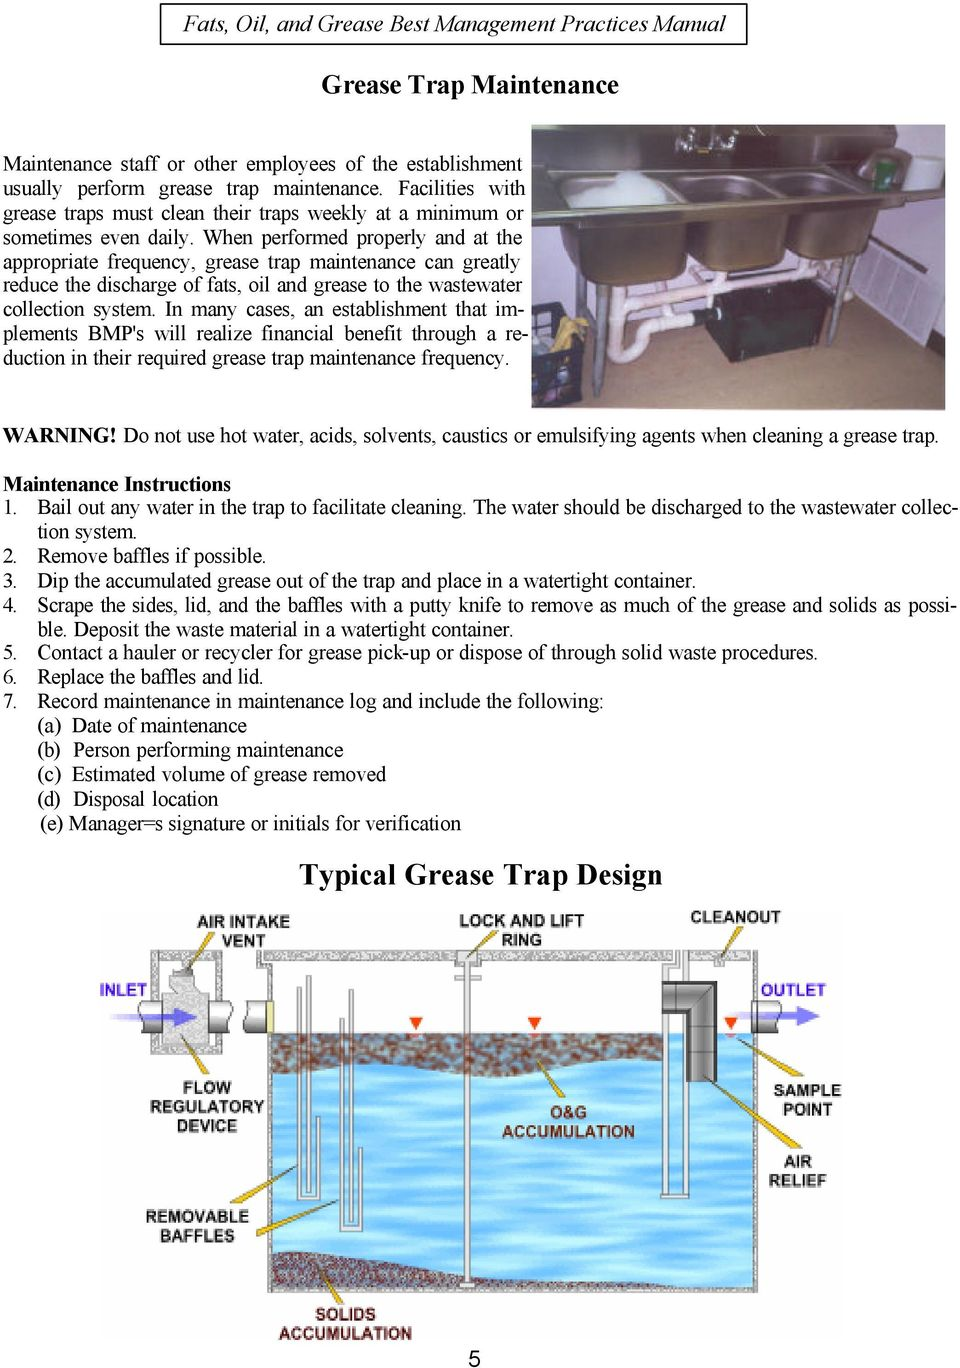 When performed properly and at the appropriate frequency, grease trap maintenance can greatly reduce the discharge of fats, oil and grease to the wastewater collection system.